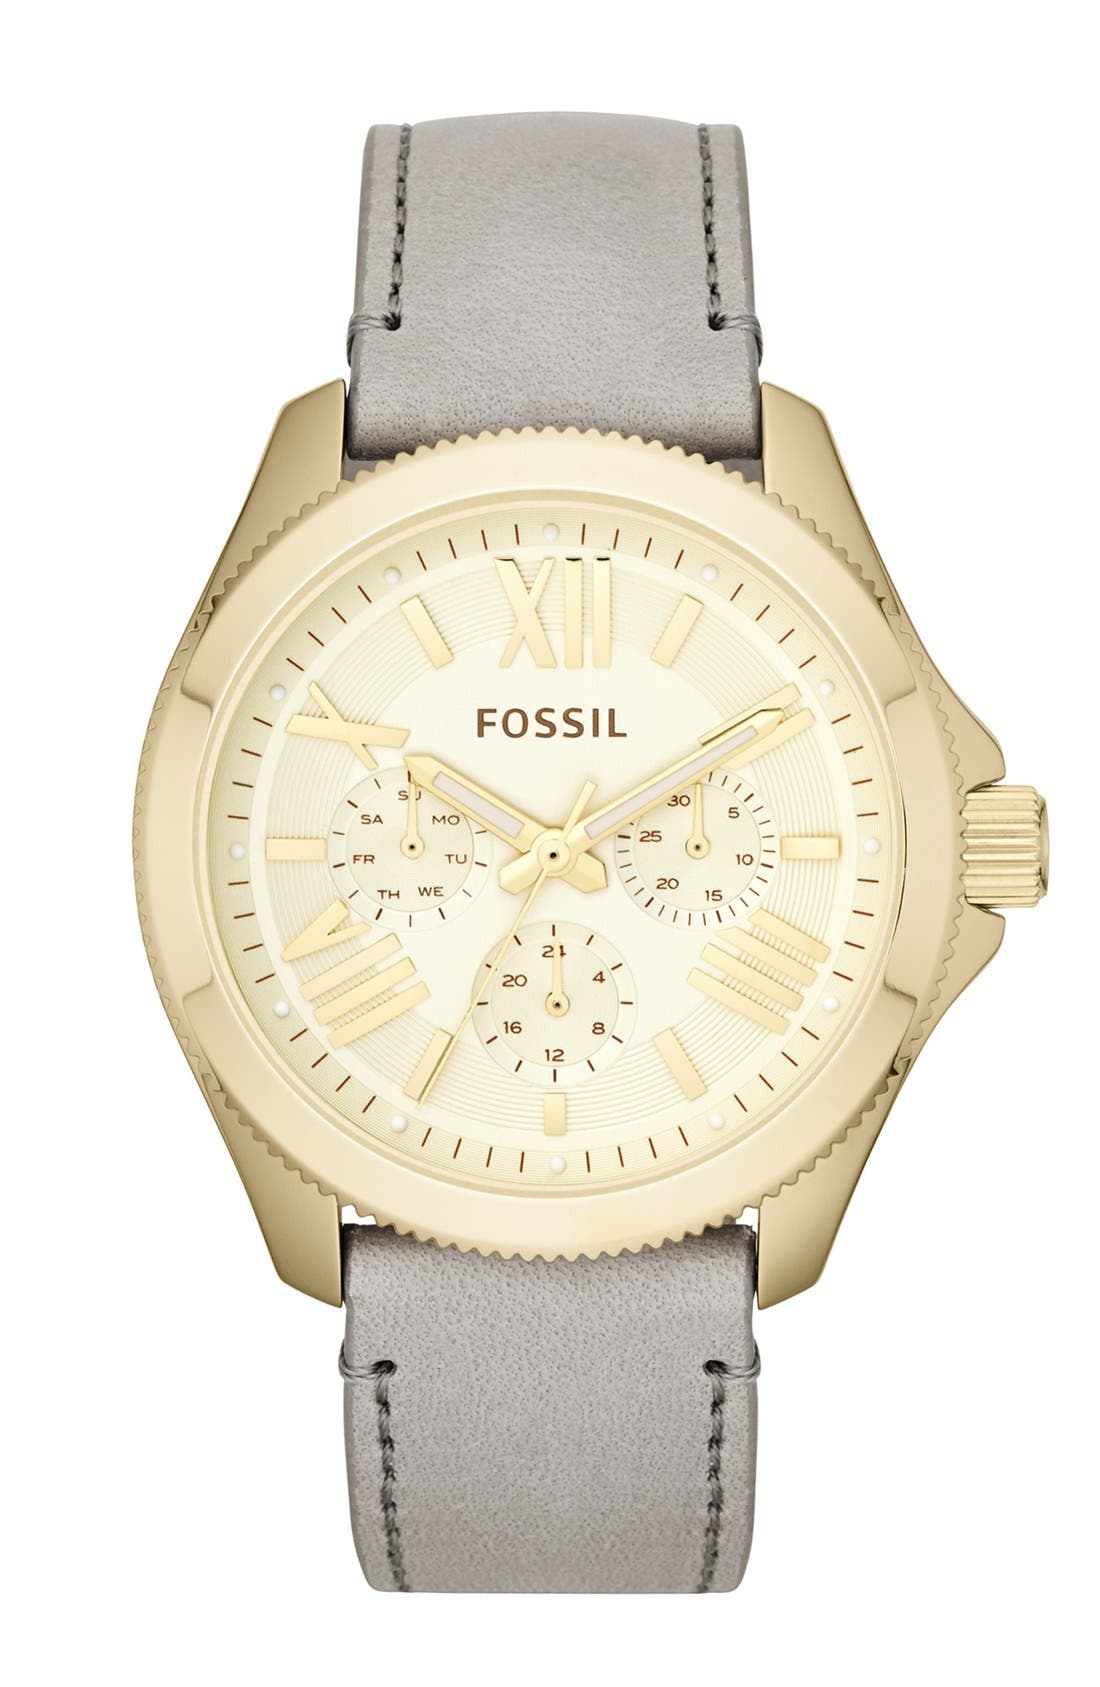 FOSSIL, 'Cecile' Multifunction Leather Strap Watch, 40mm, Main thumbnail 1, color, 020